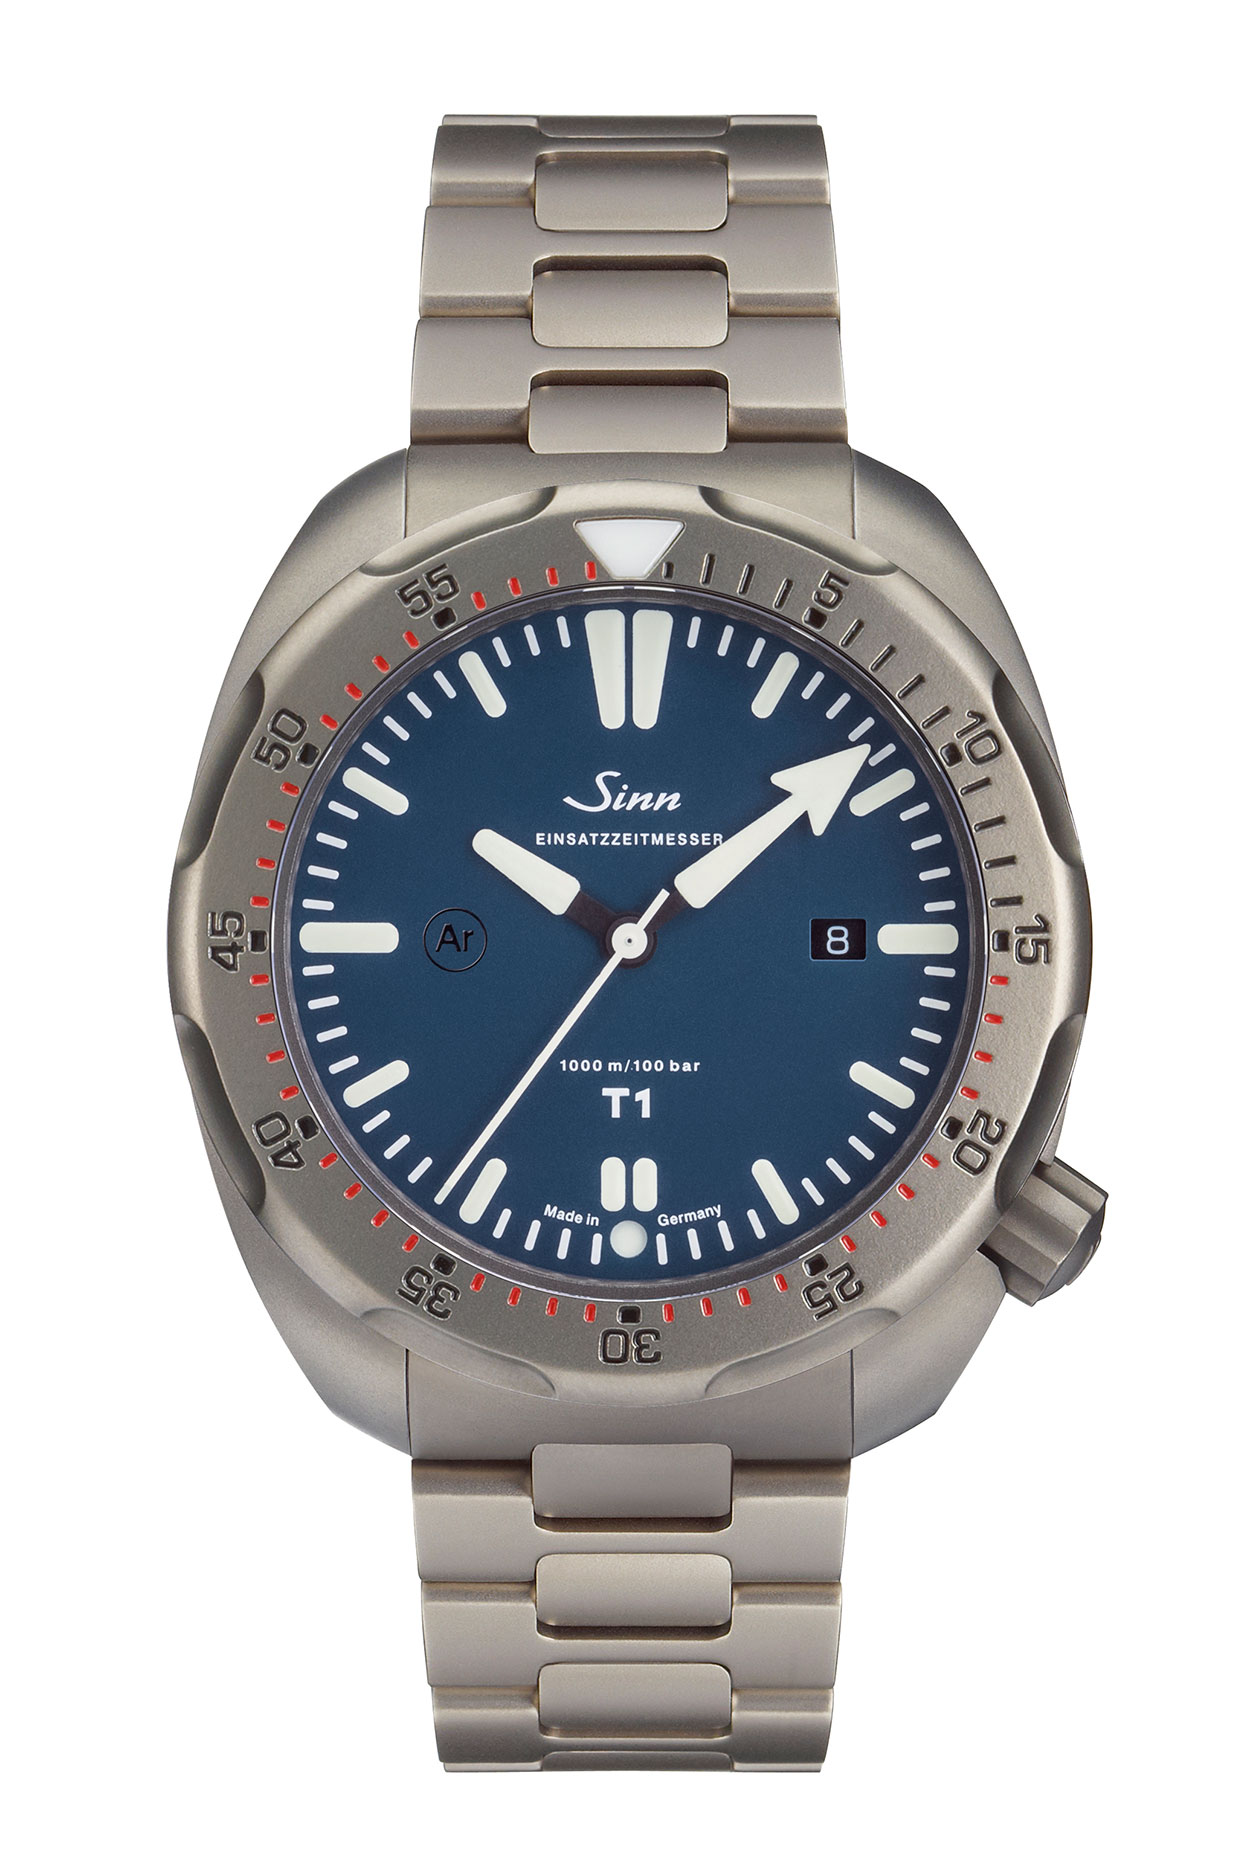 T1 B : An Exceptional Diving Watch